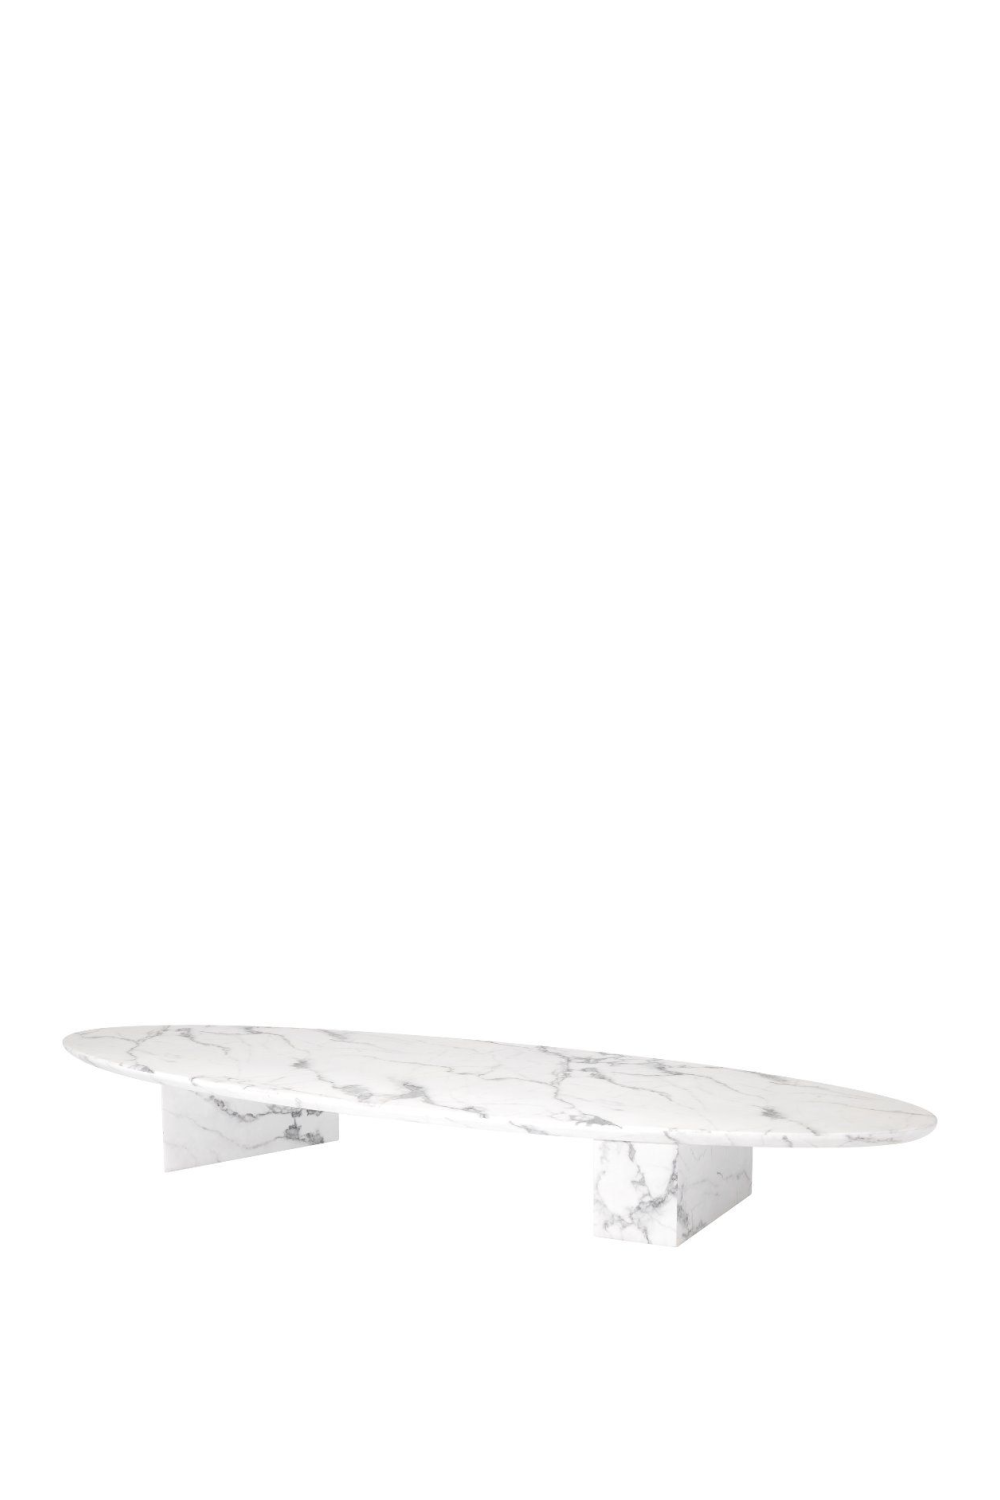 White Marble Oval Coffee Table | Eichholtz Aurore | OROA Furniture #1 Eichholtz Retailer